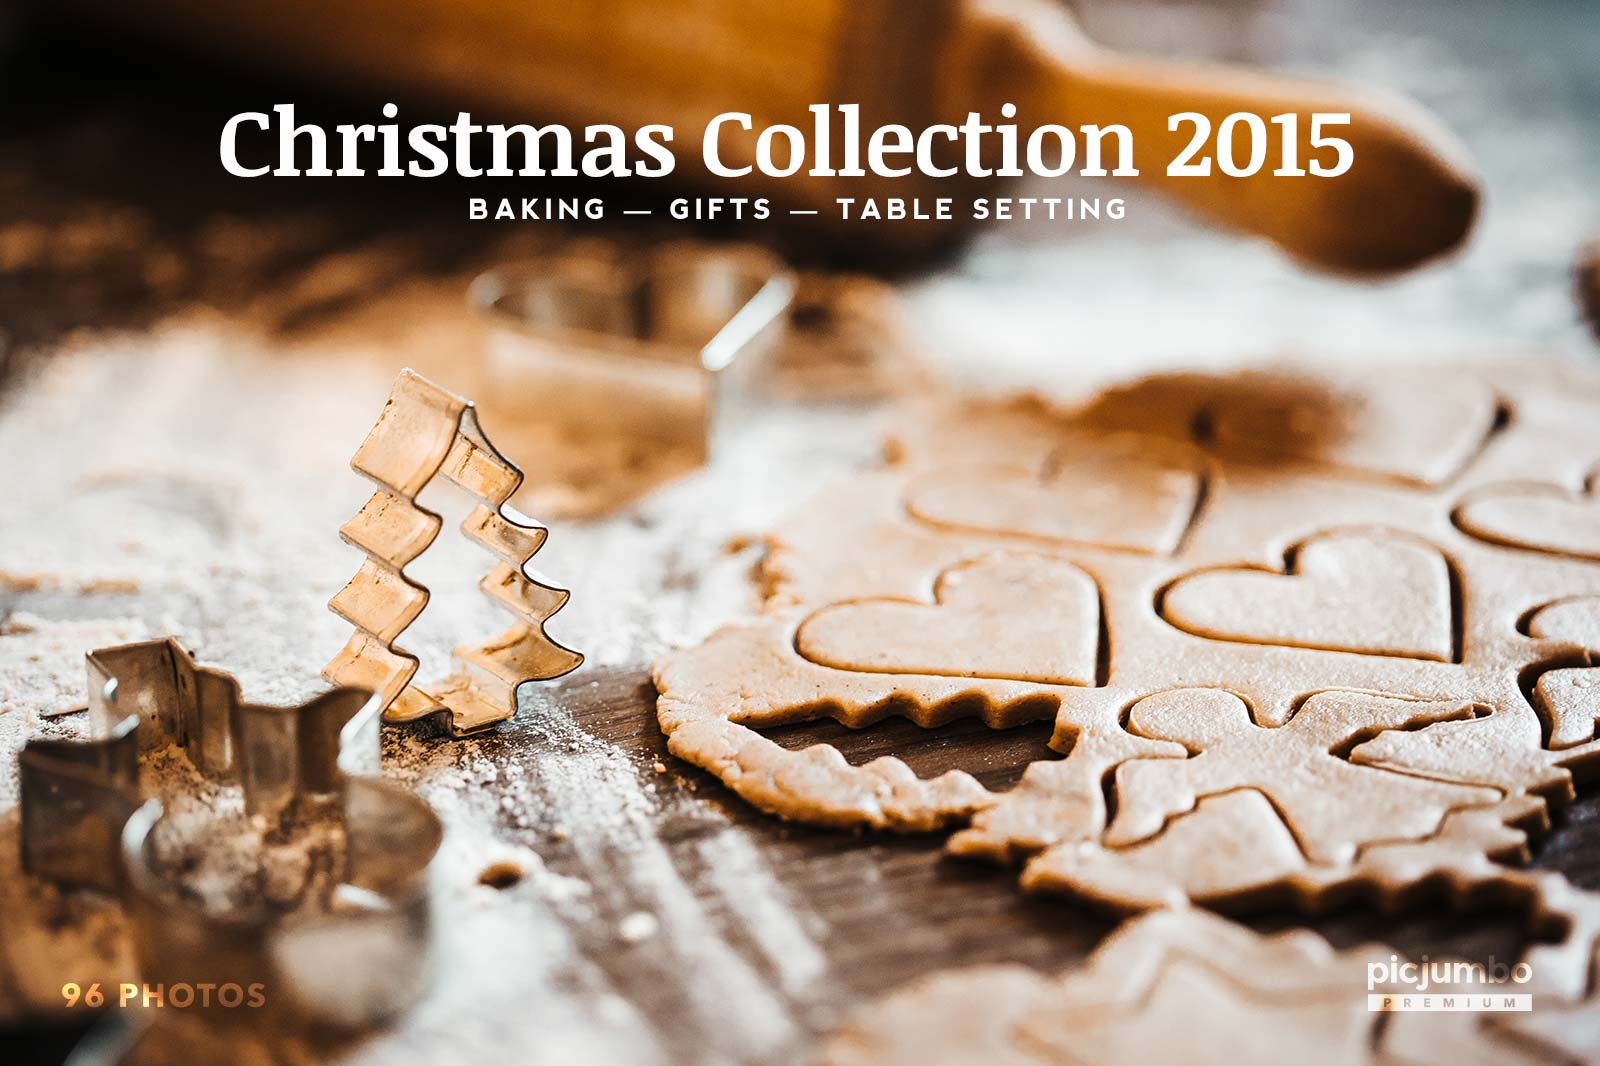 Join PREMIUM and get full collection now: Christmas Collection 2015